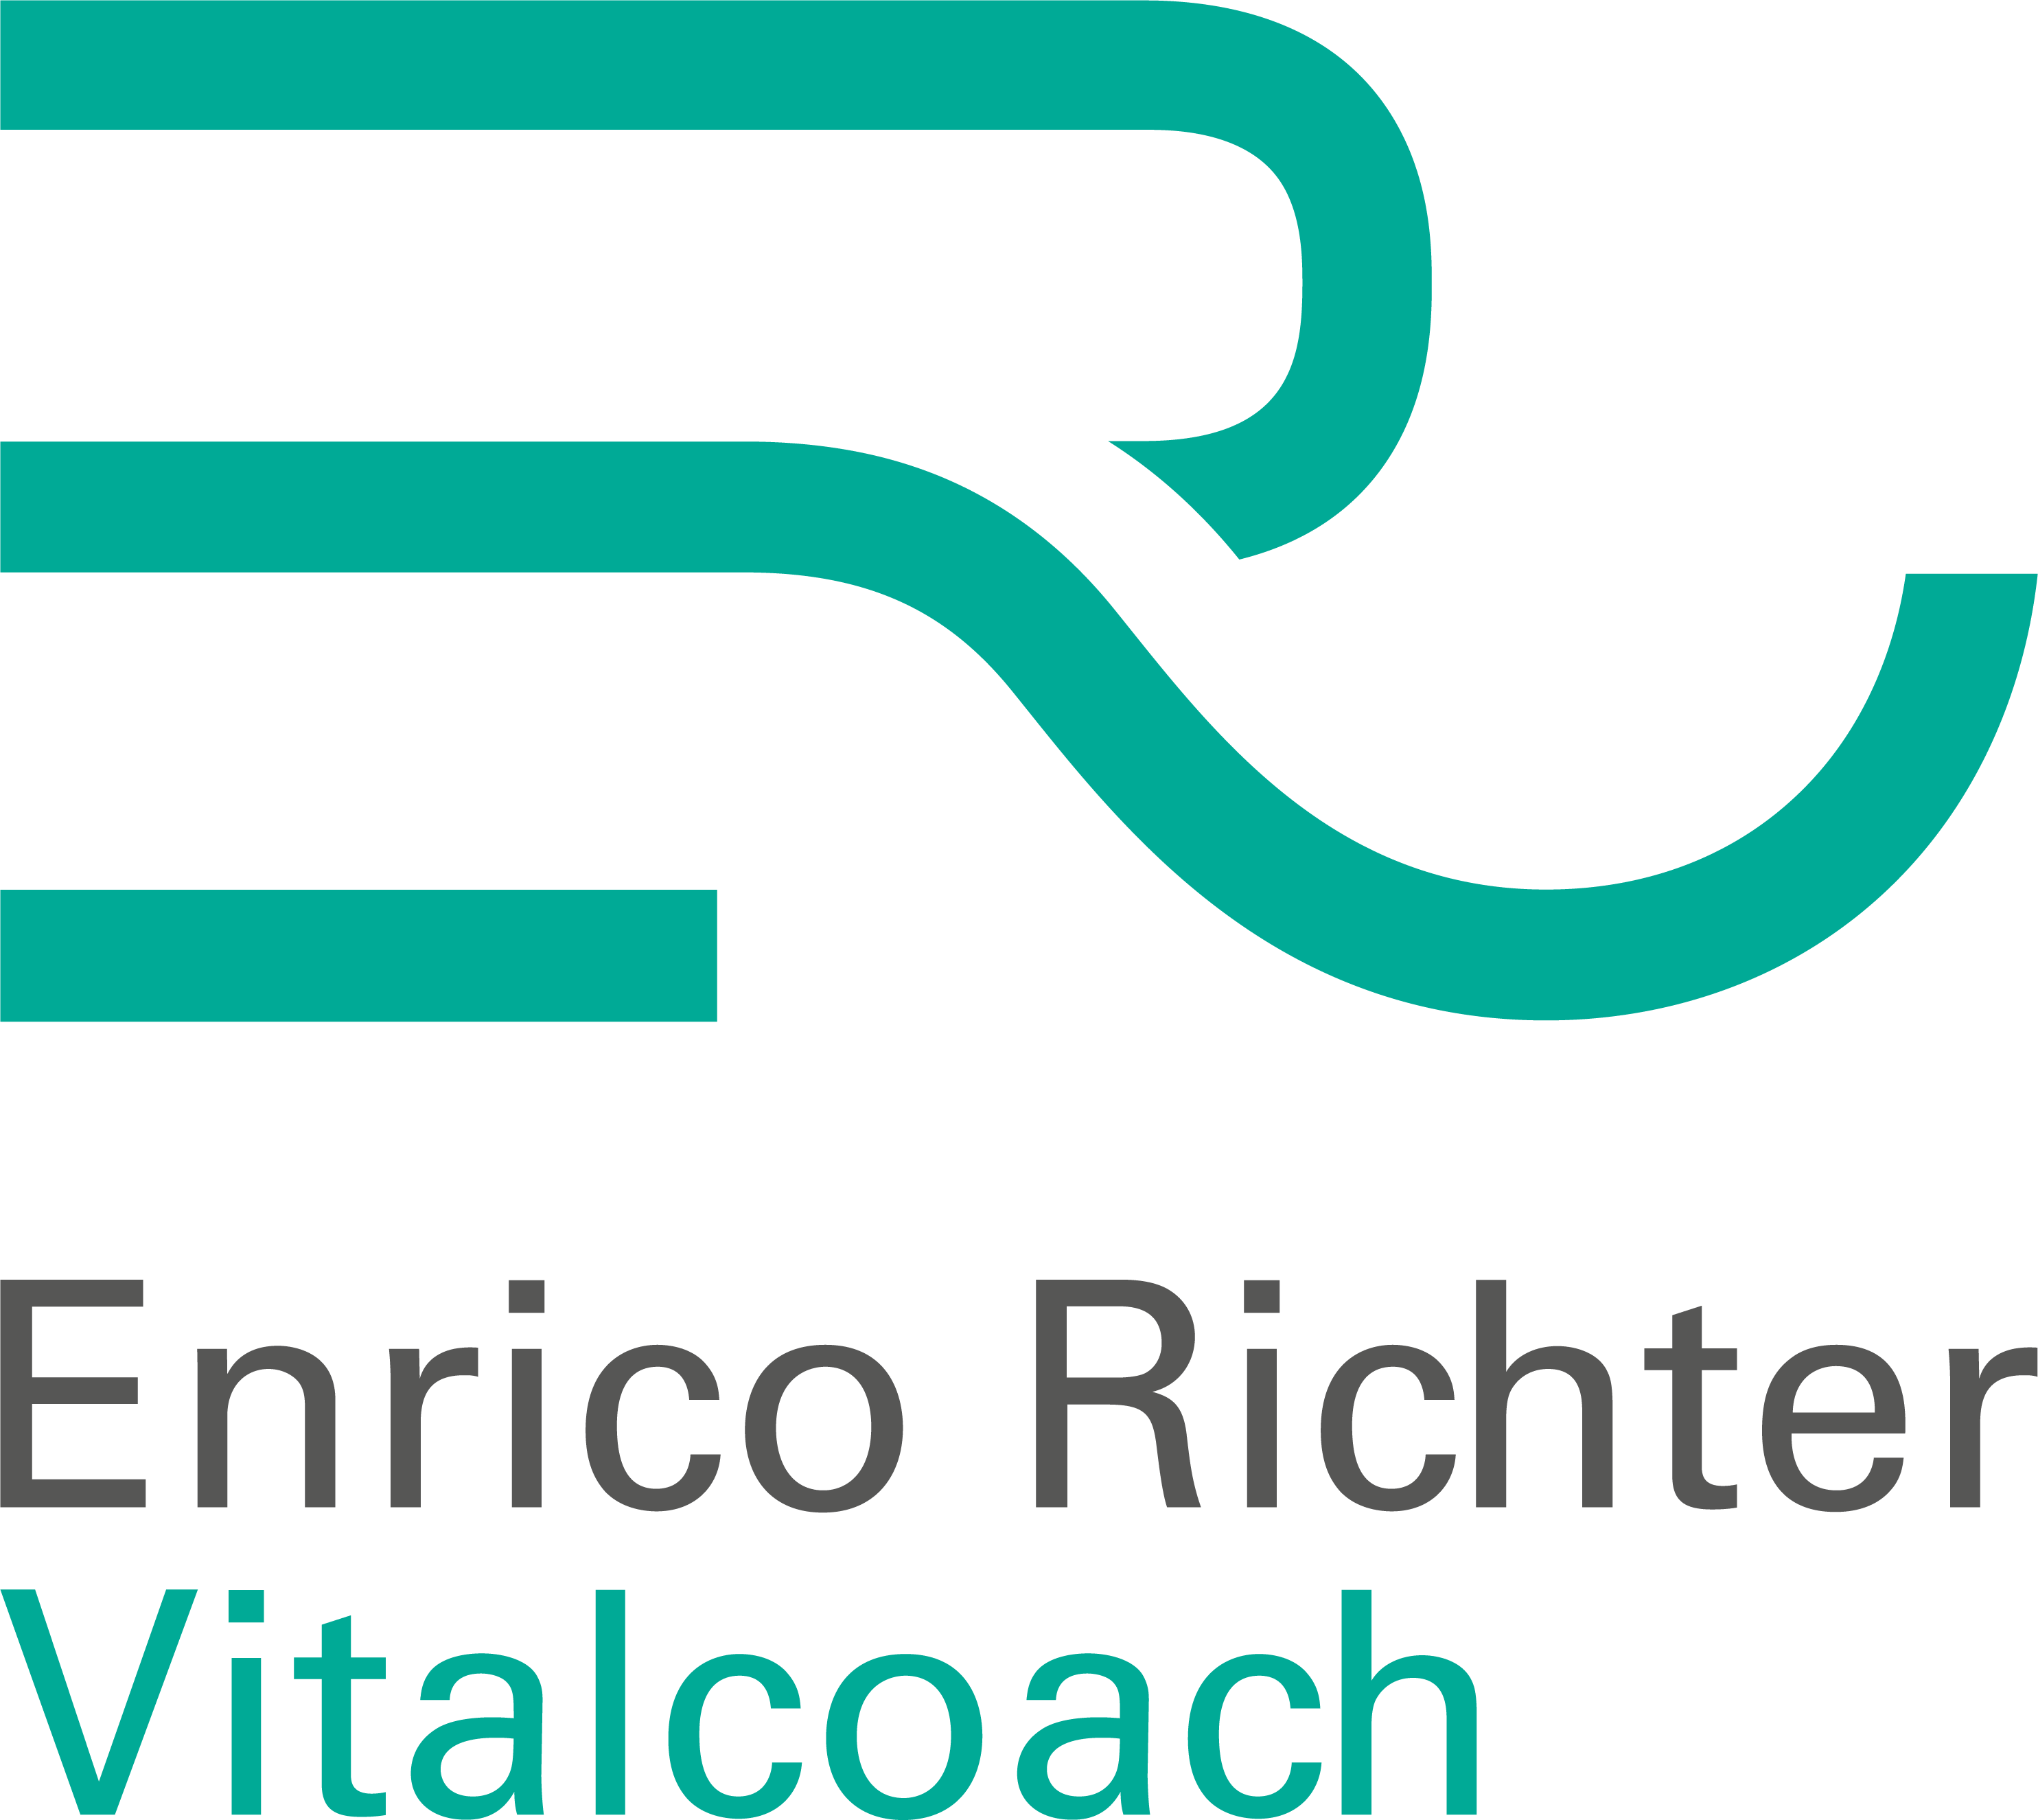 Personal Training & Physiotherapie | Enrico Richter – Vitalcoach Logo